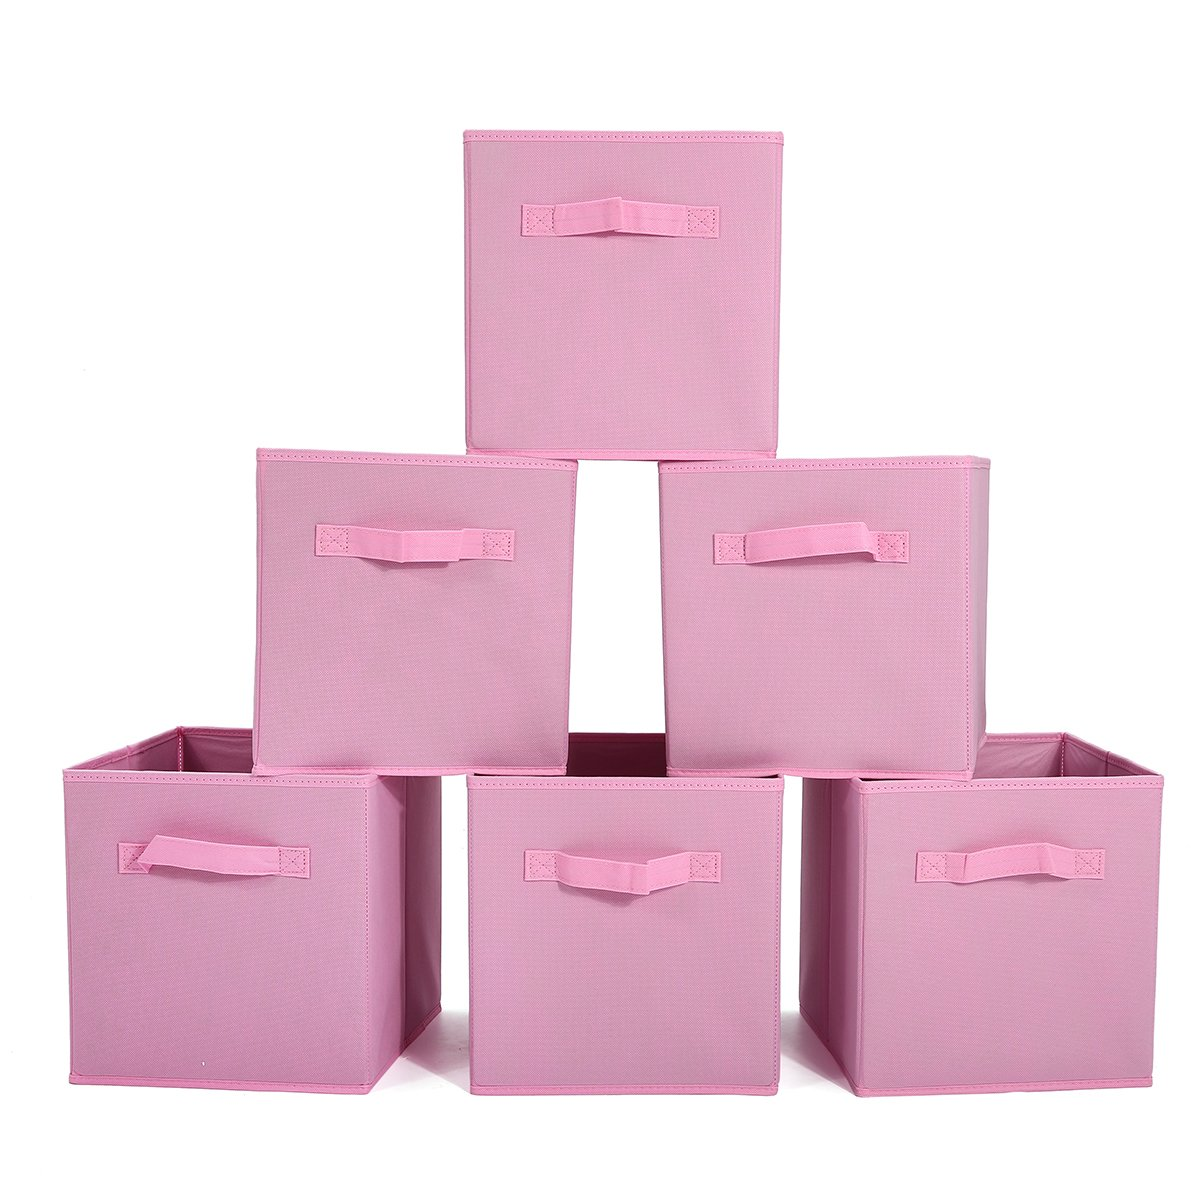 GEMITTO Pack of 6 Non-Woven Fabric Storage Cubes Foldable Cloth Storage Bins Baskets with Handles for Closet Nursery Pink